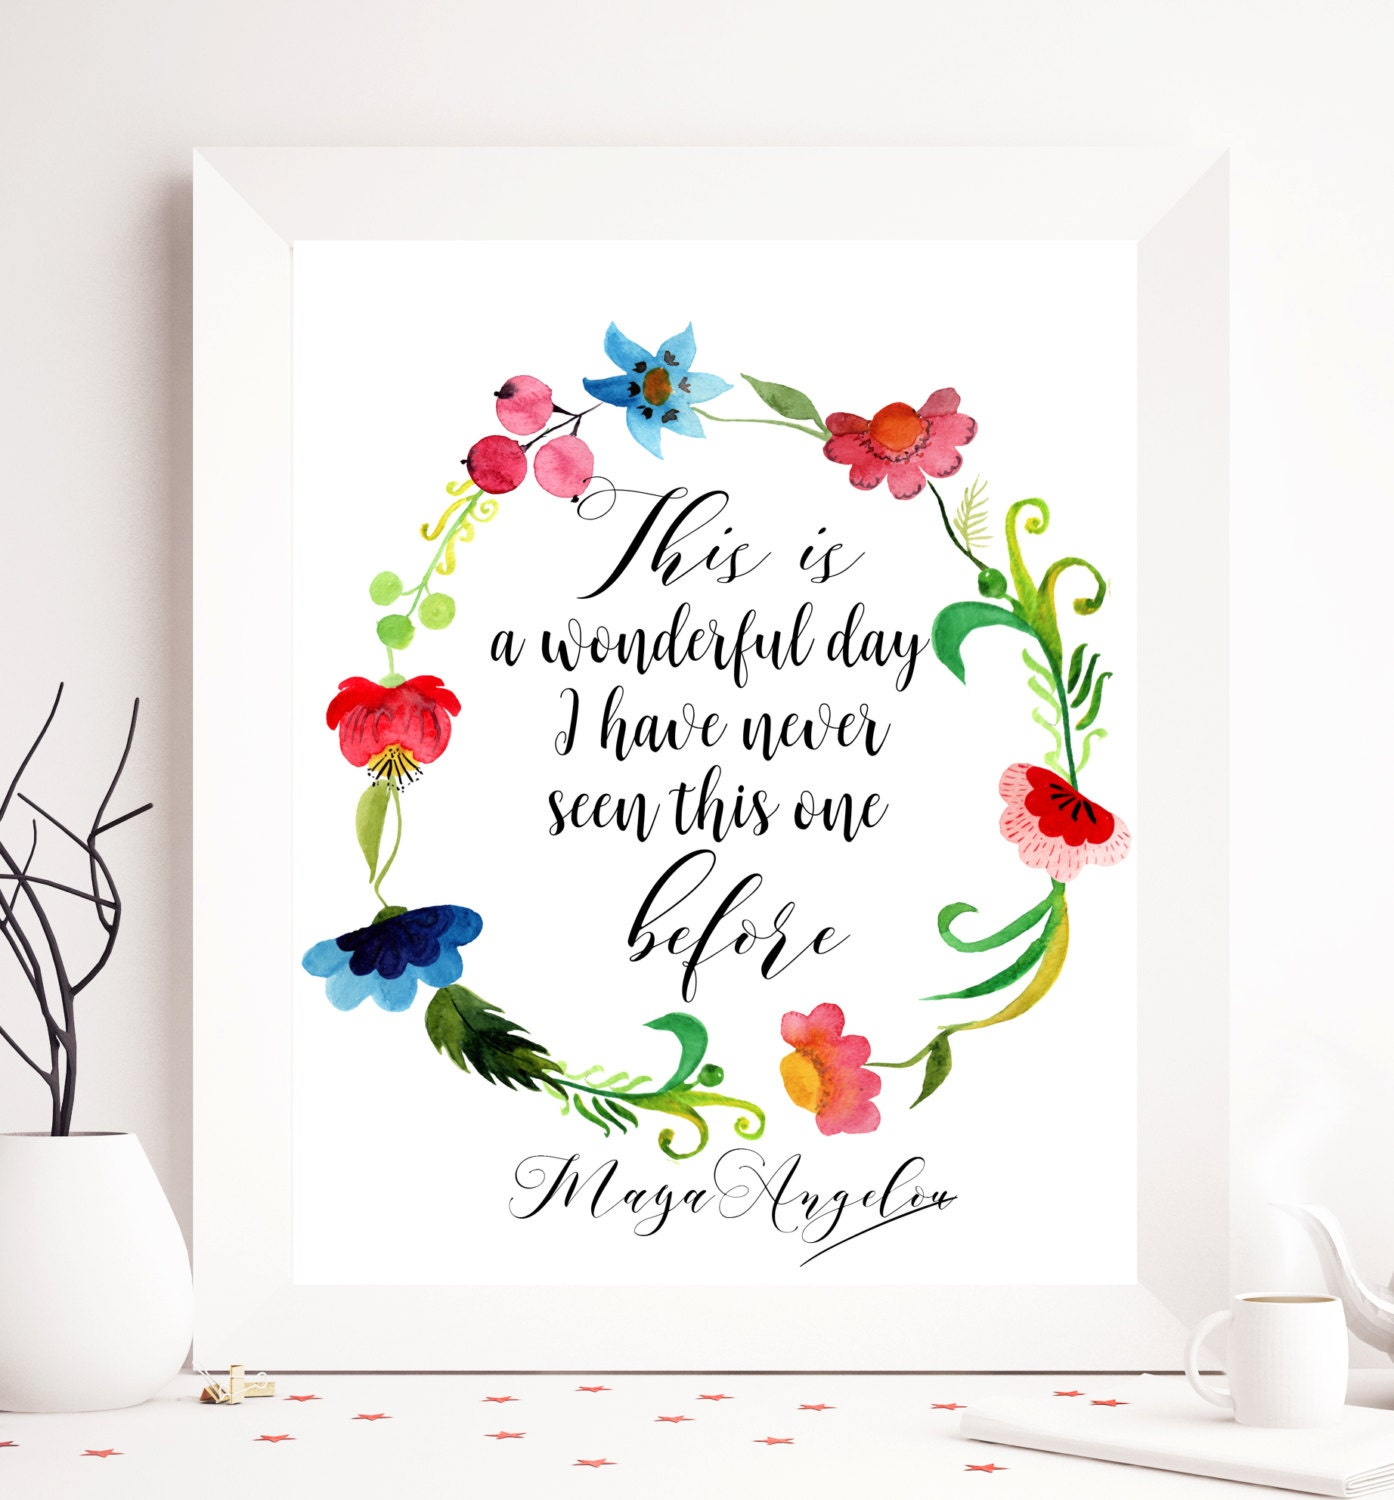 Maya angelou printable quote this is a wonderful day zoom kristyandbryce Images